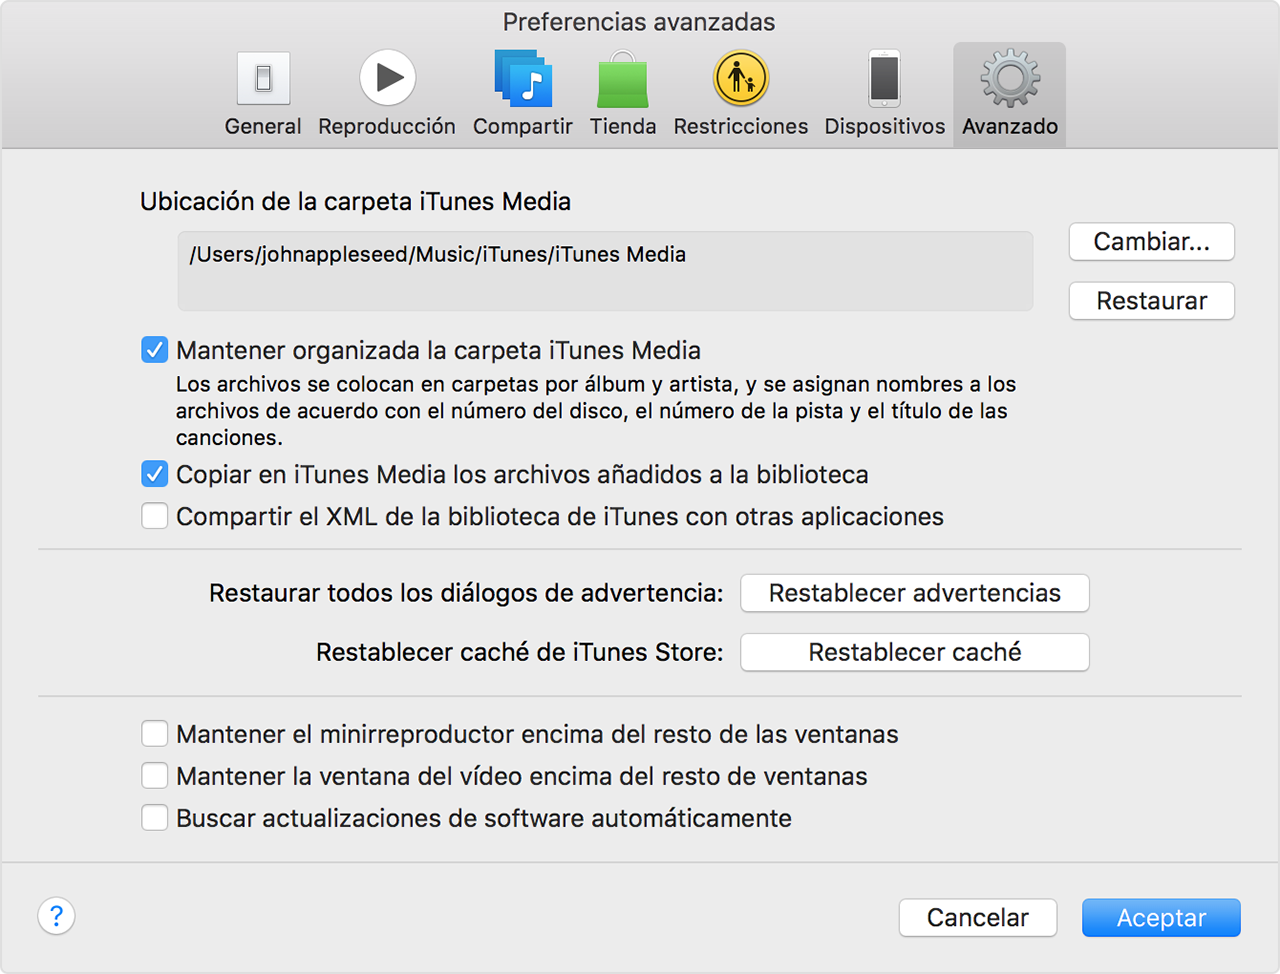 Preferencias avanzadas de iTunes